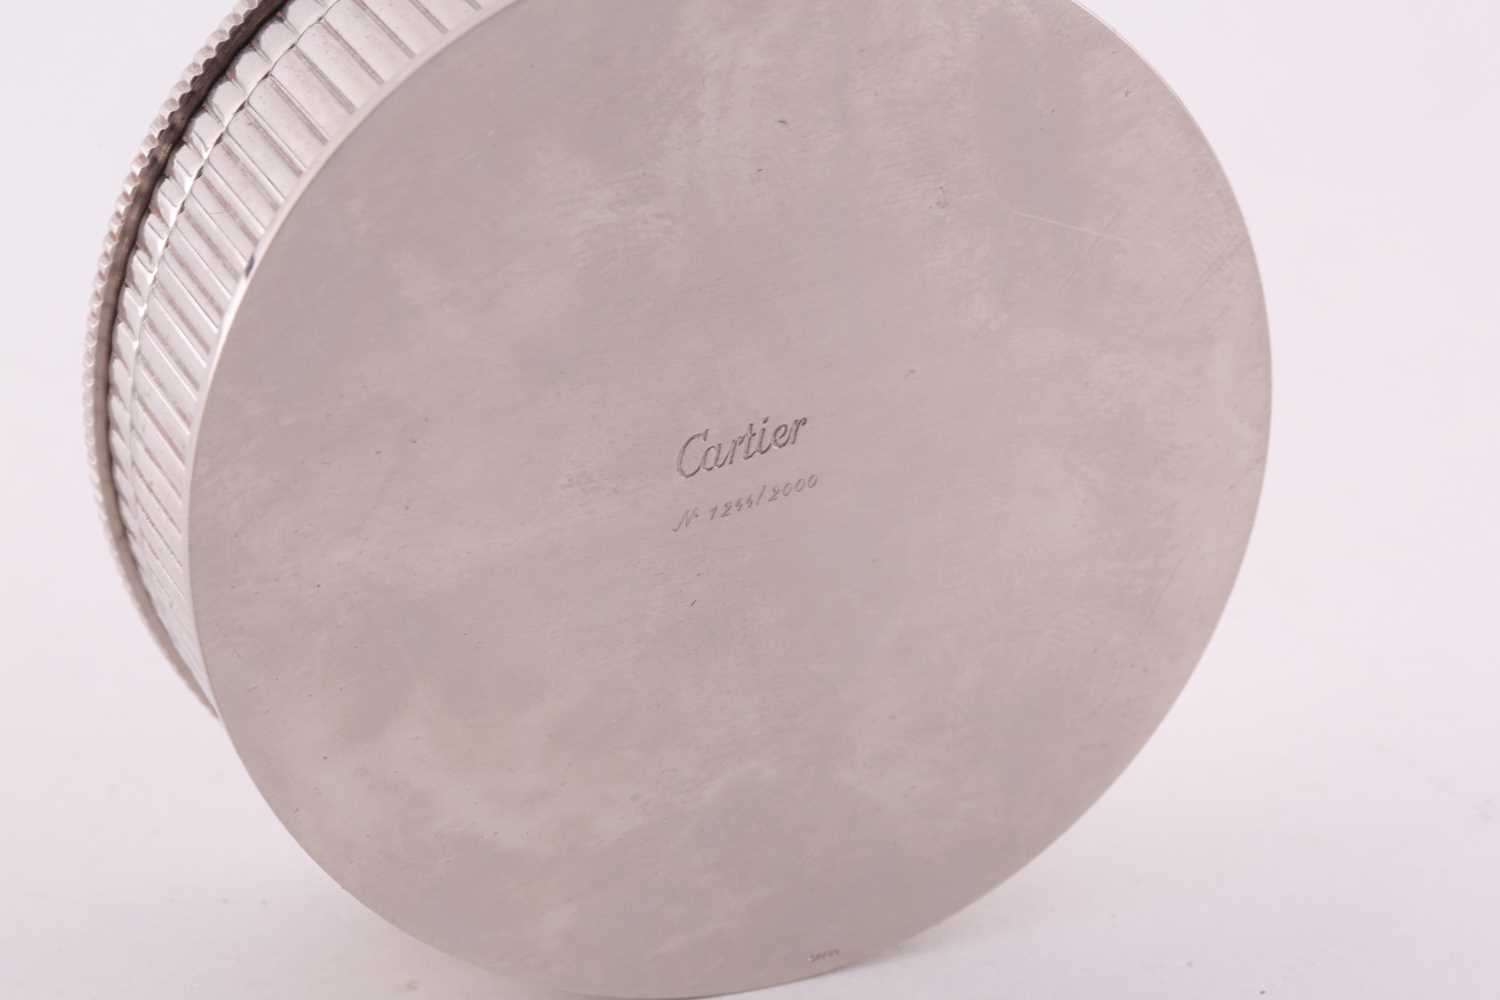 A Cartier chrome desk calender, with adjustable year, month, and date dial to lid, 8 cm diameter, - Image 5 of 5